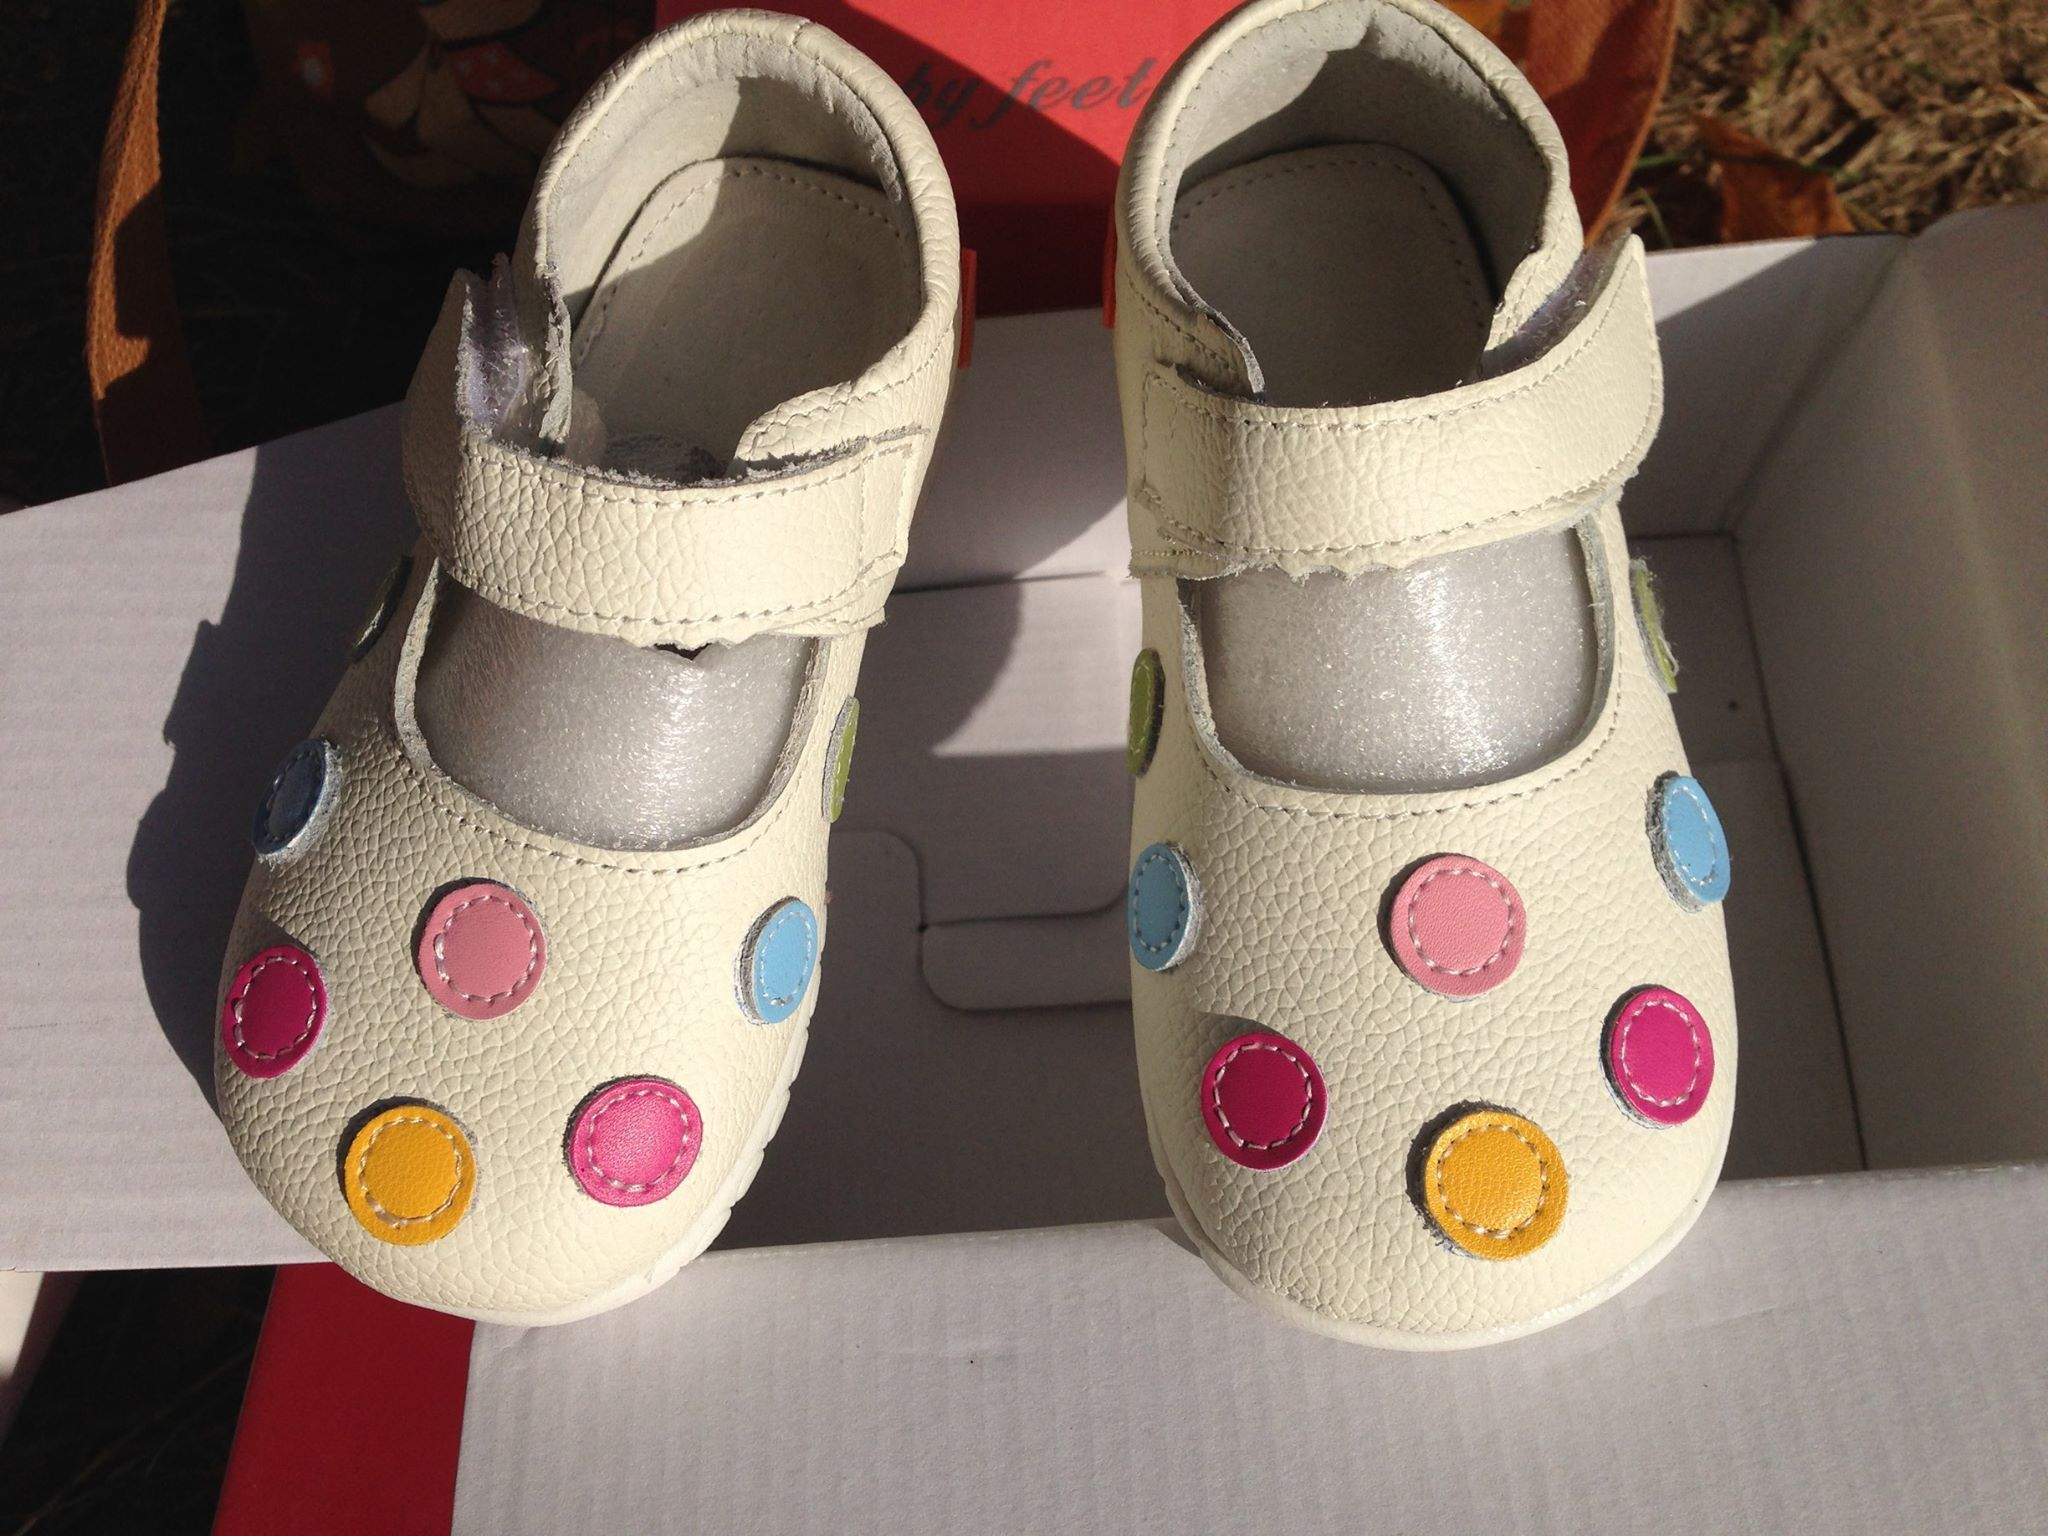 Boocorababyshoes boocora squeaky shoes toddler shoes